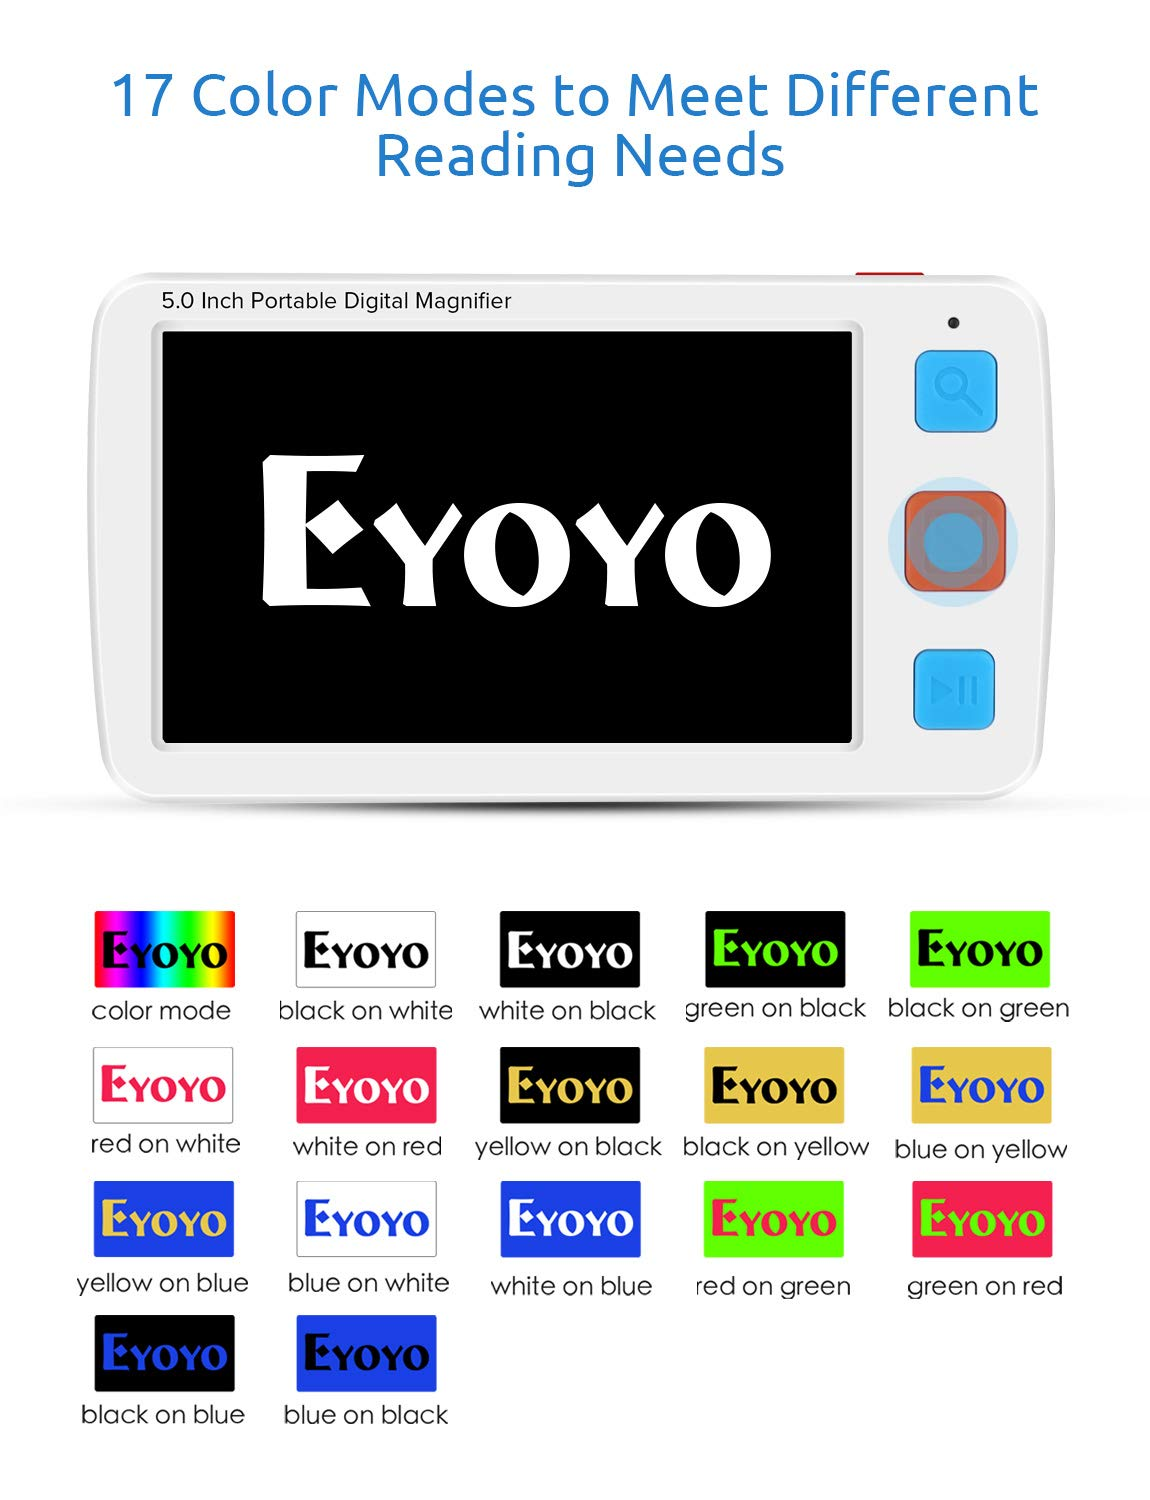 Eyoyo Portable Digital Magnifier Electronic Reading Aid 5.0 inch w/Foldable Handle for Low Vision Color Blindness 4X-32X Times Zoom 17 Color Modes 5 Levels for Brightness by Eyoyo (Image #5)